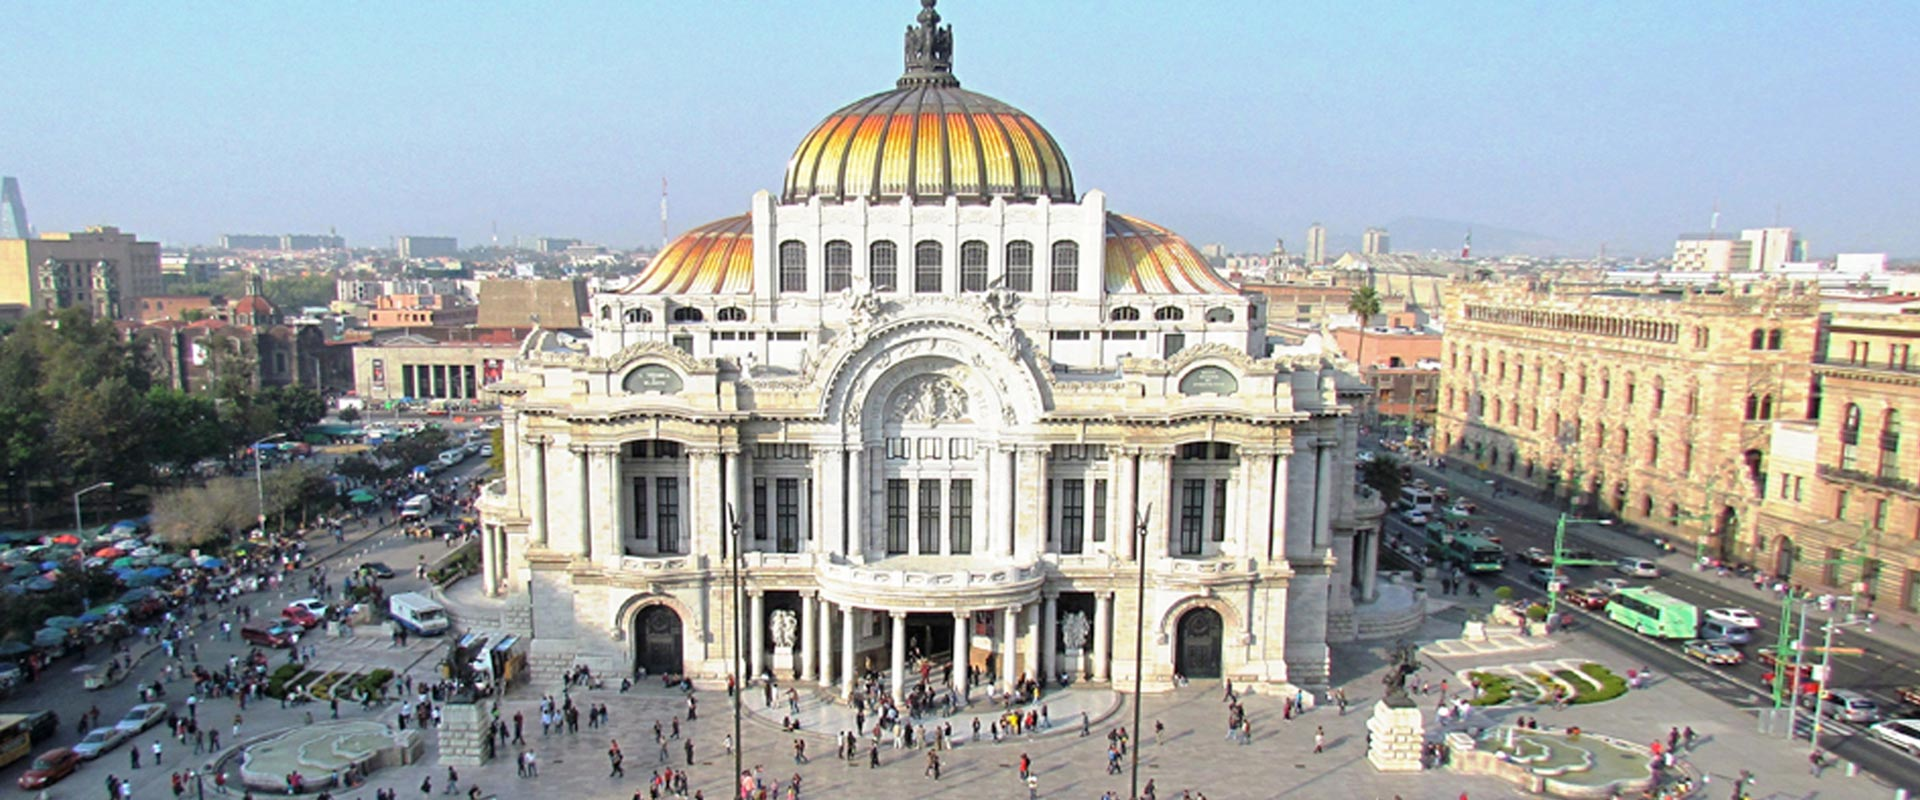 Bellas Artes – Fine Arts Palace